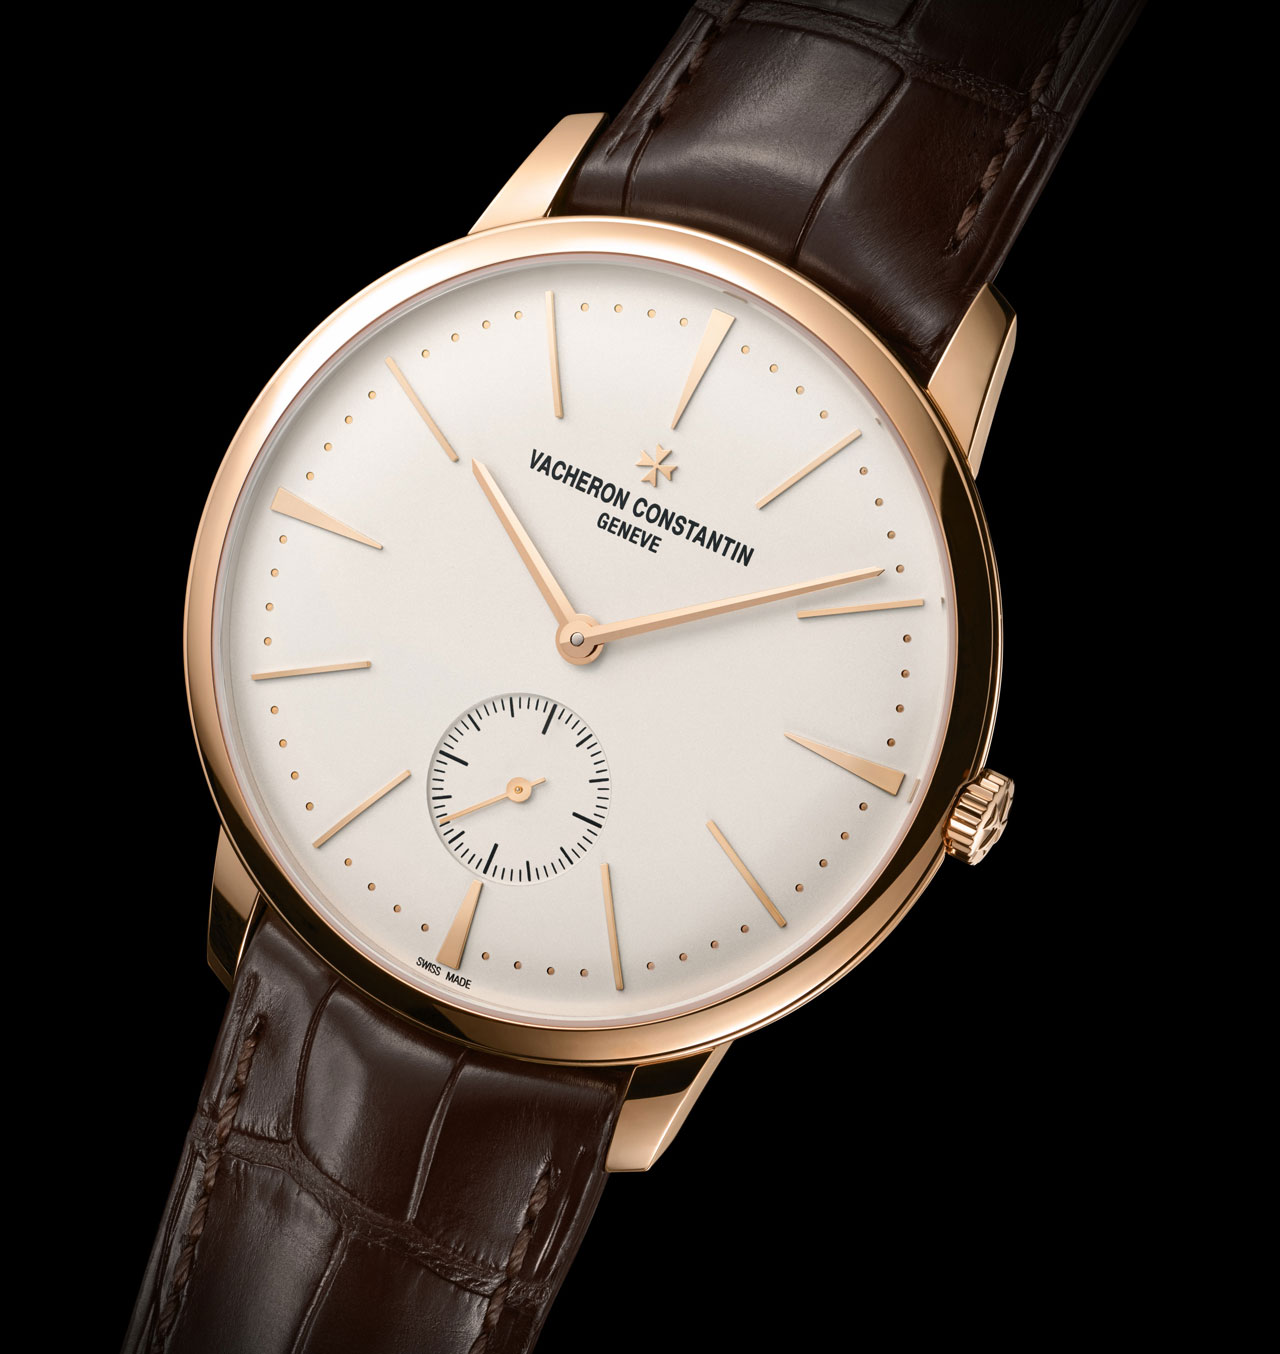 Vacheron constantin patrimony 42 mm time and watches for Vacheron constantin